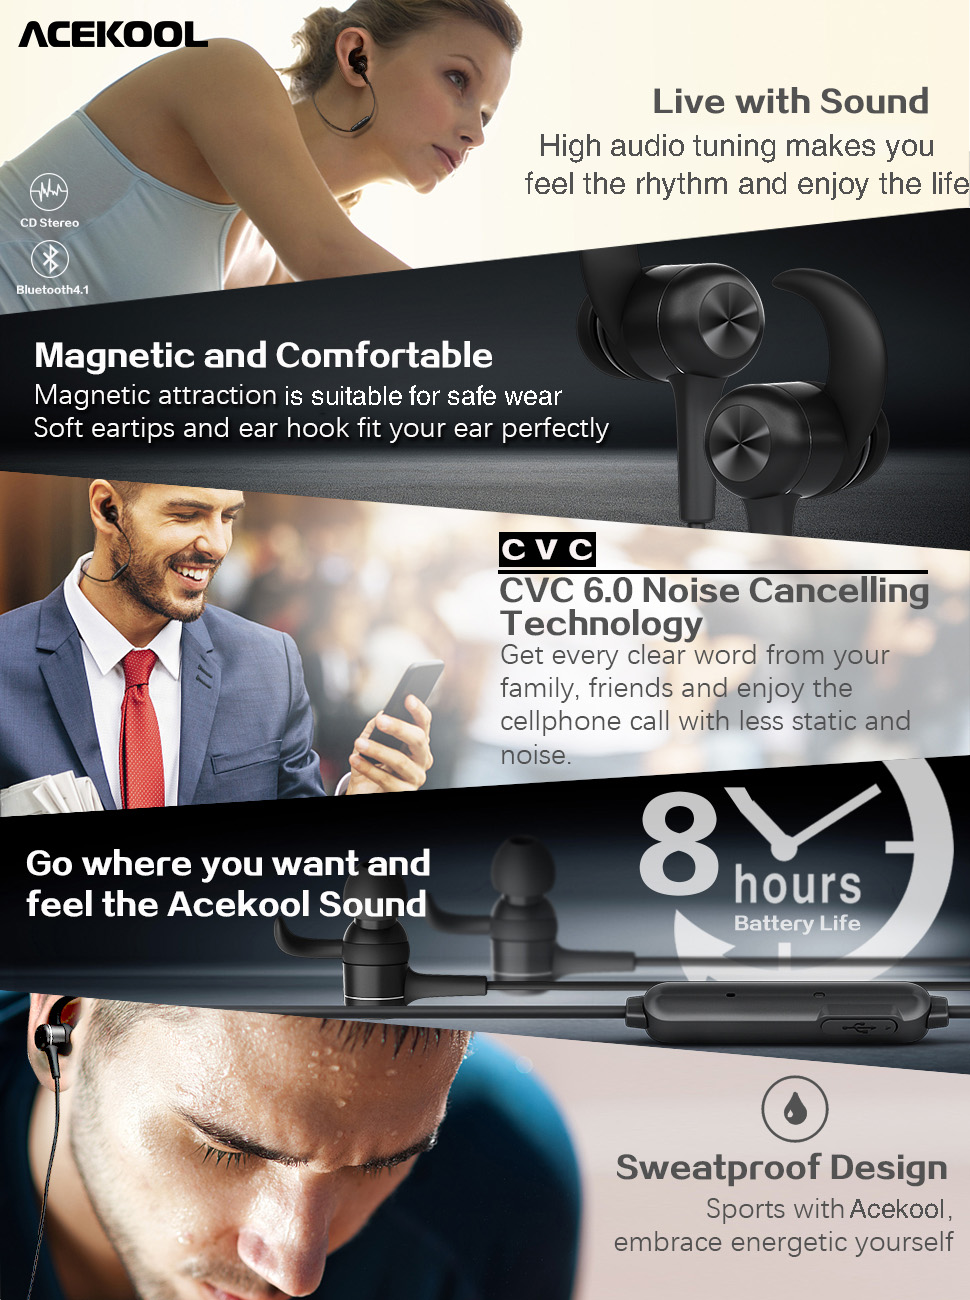 Bluetooth Headphones In Ear, Wireless Magnetic Headphones HD Stereo Earphones, IPX5 Sweatproof Secure Fit for Sports with CVC 6.